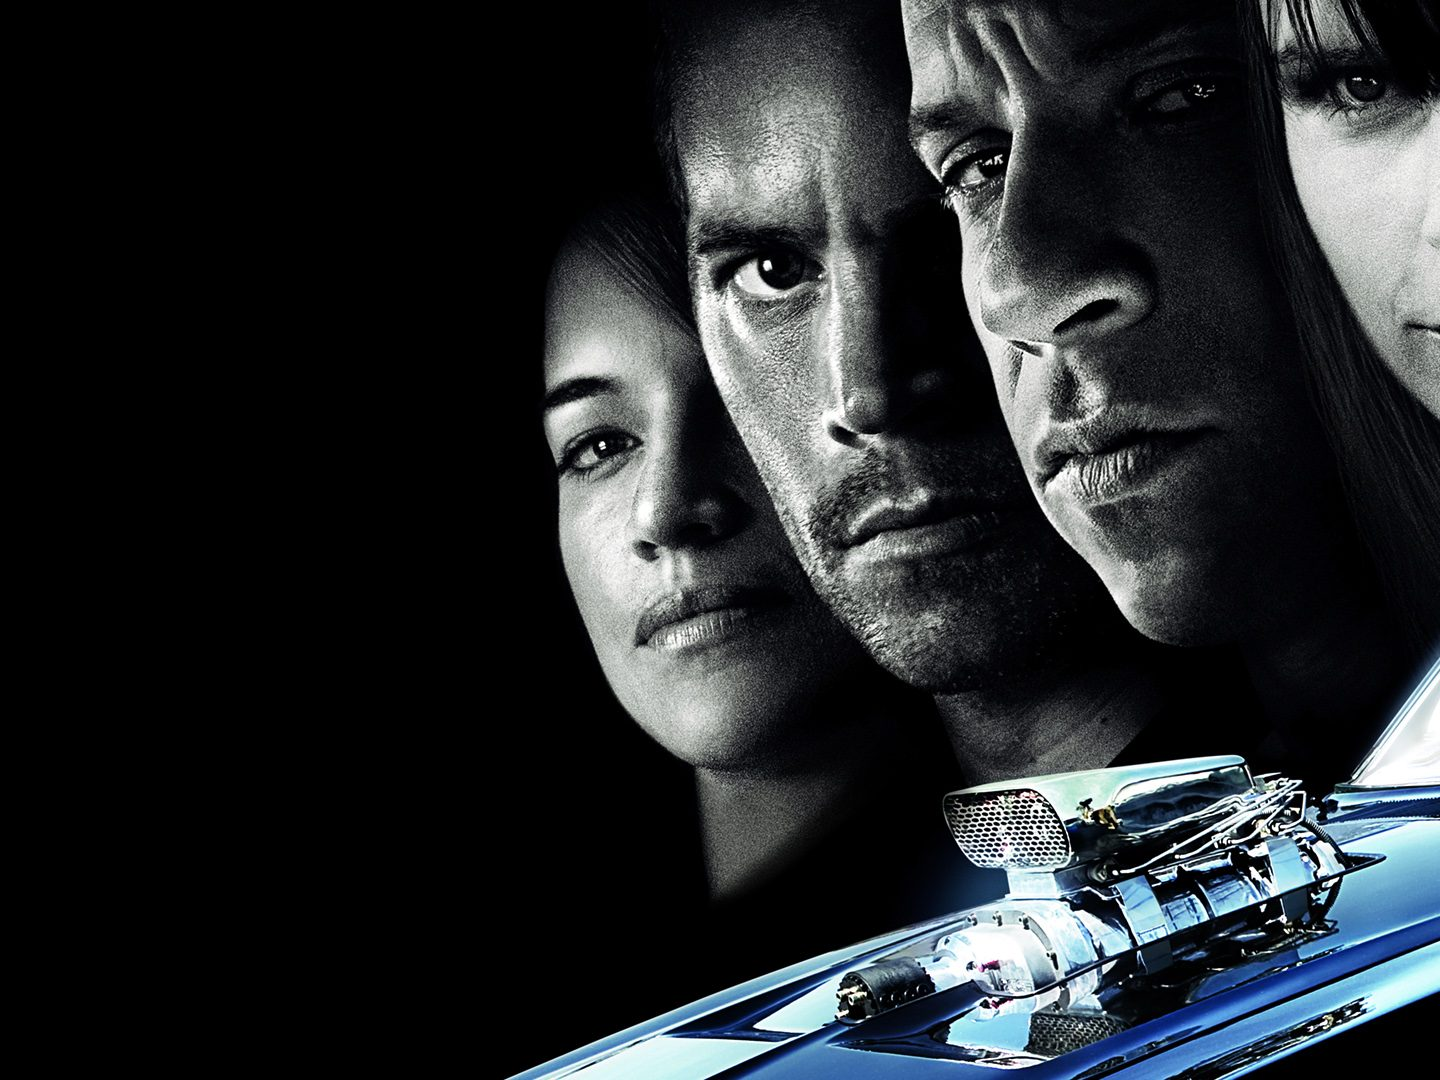 Fast And Furious Hd Wallpaper Background: Fast & Furious (2009) HD Wallpaper